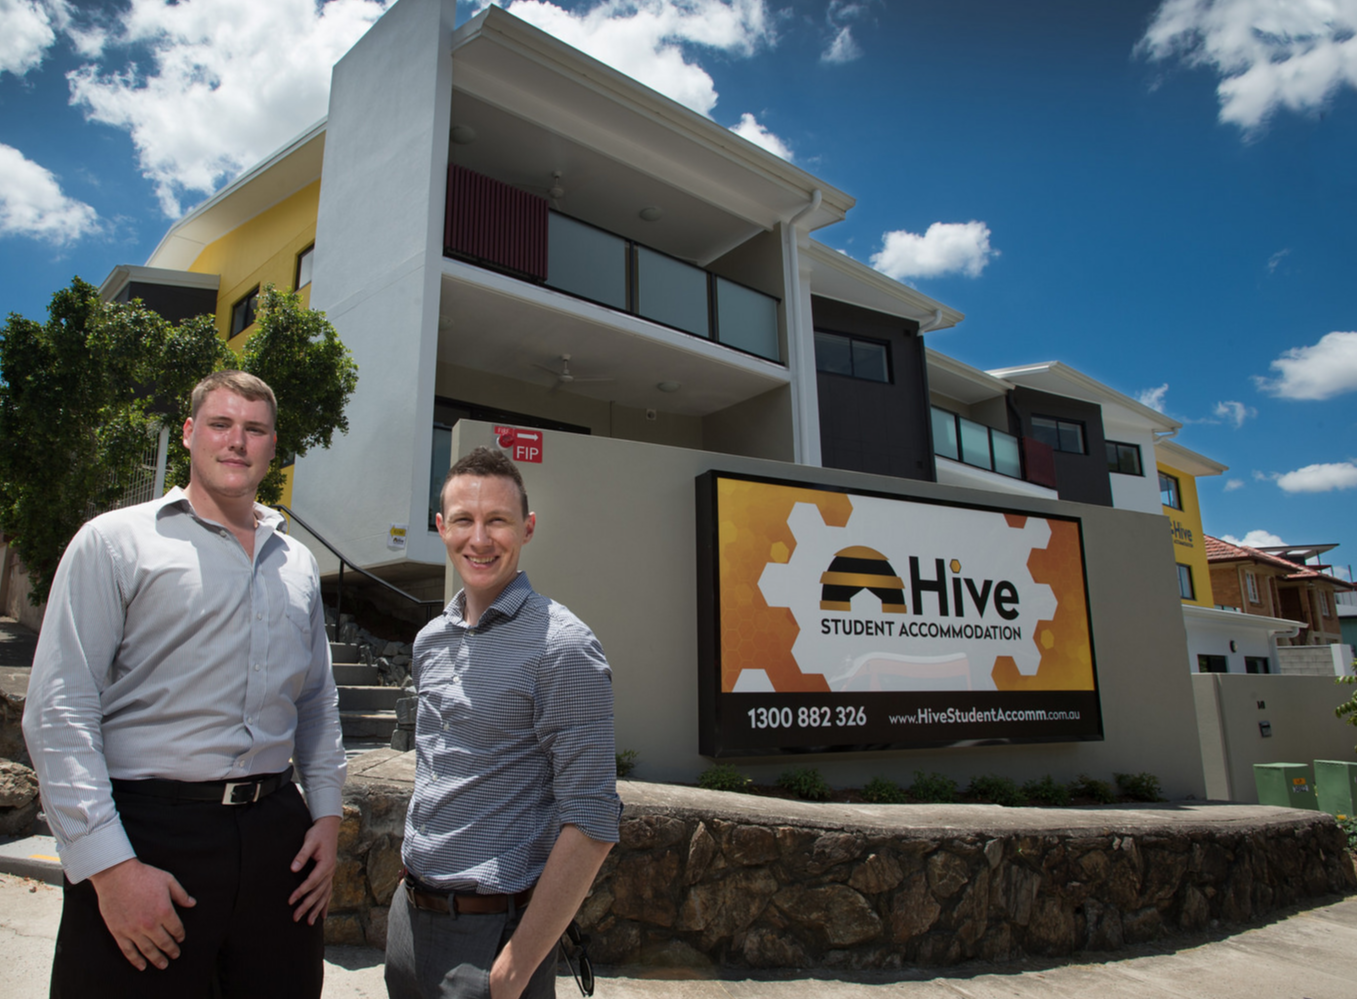 hive student accommodation